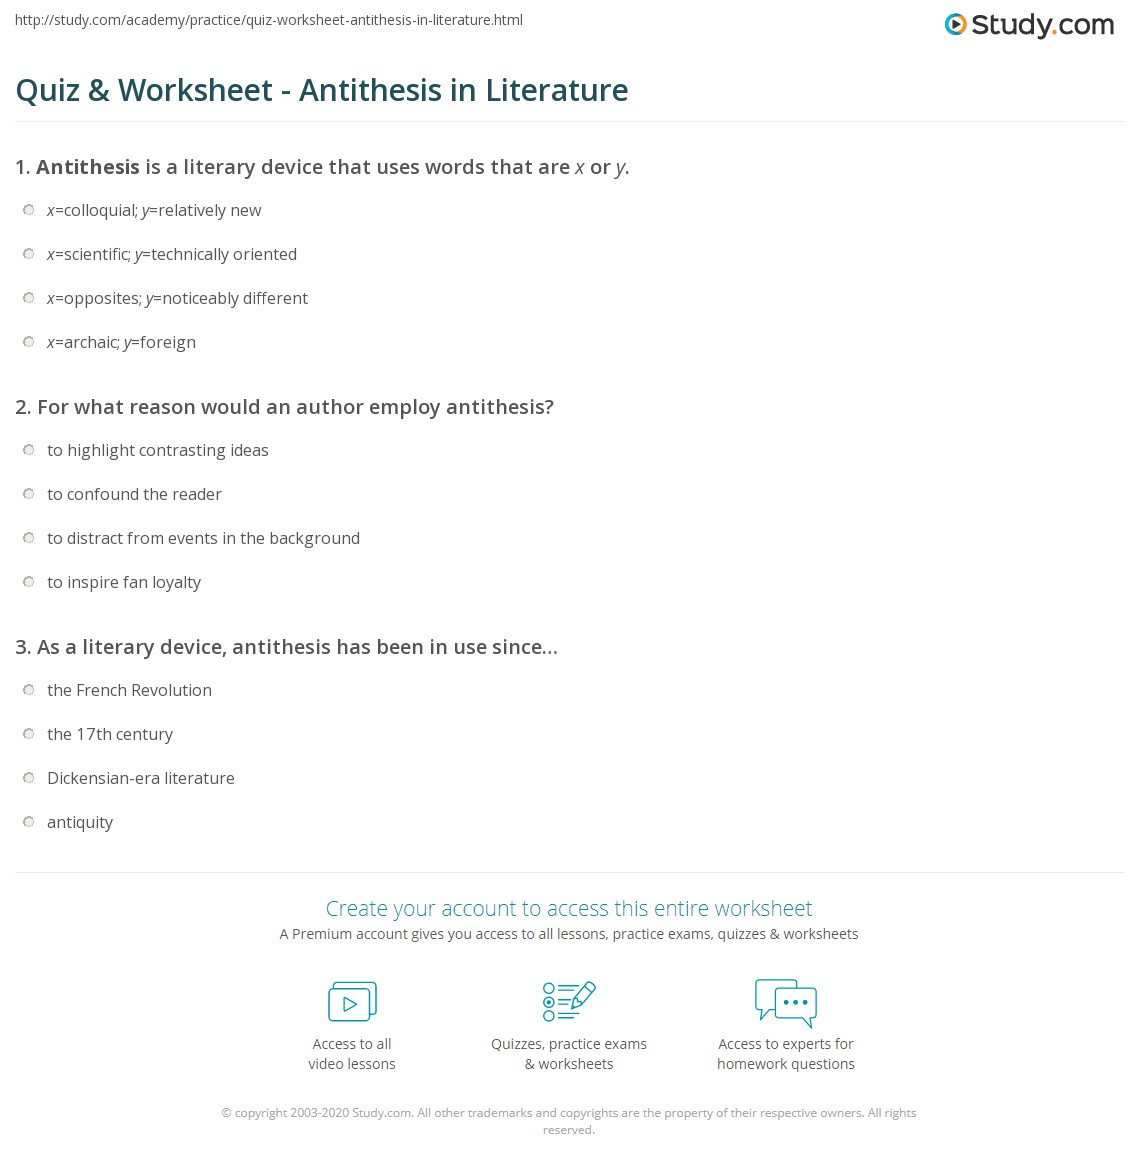 Quiz Worksheet Antithesis In Literature Study